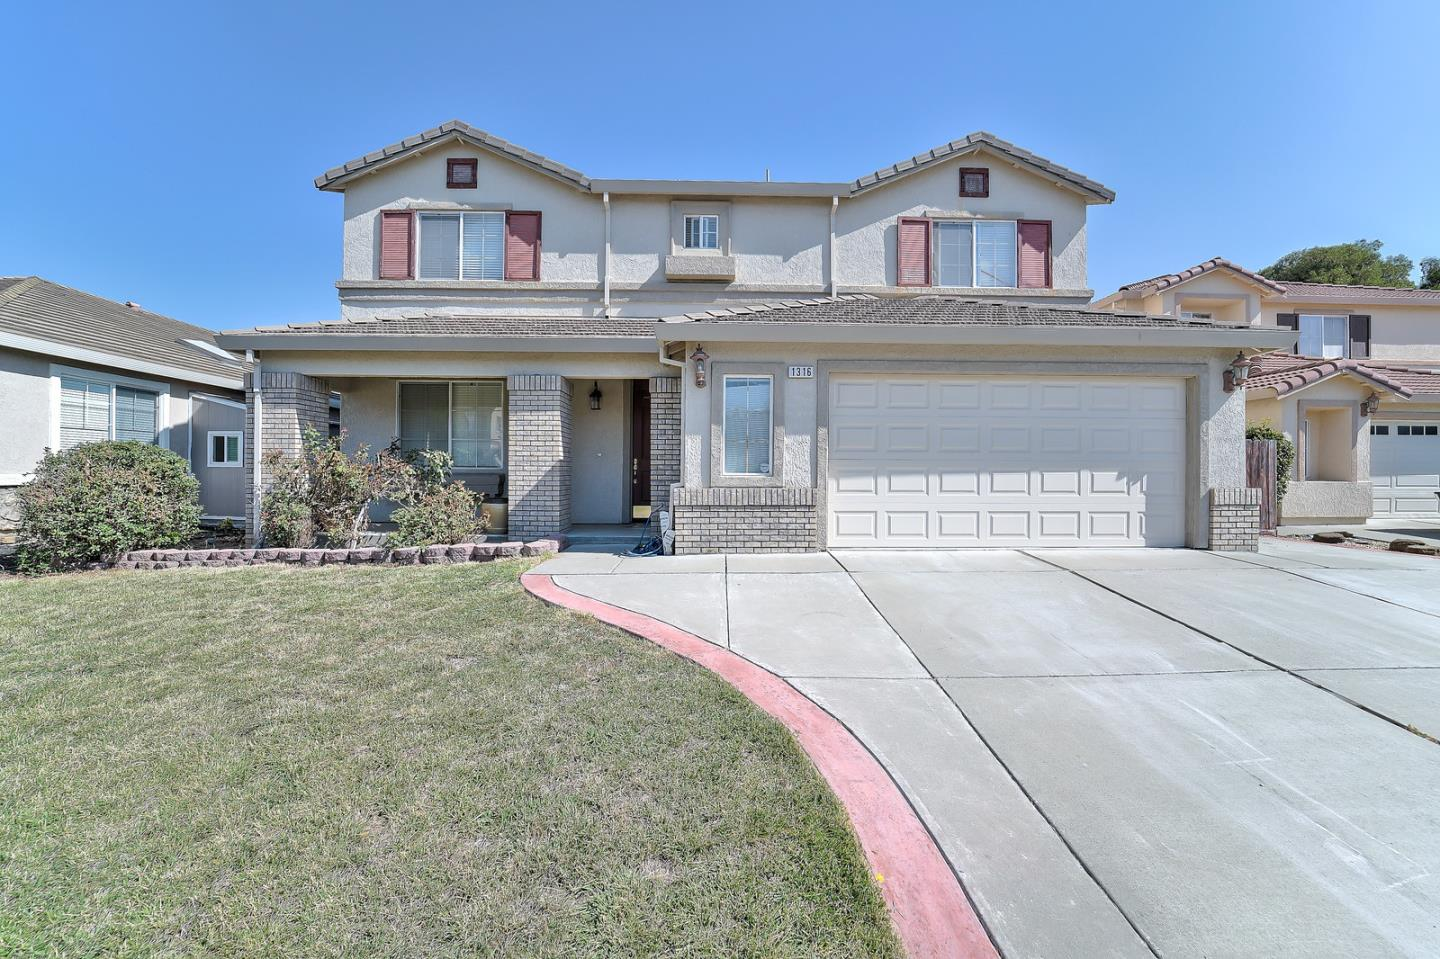 Casa Unifamiliar por un Venta en 1316 Reeves Court Suisun City, California 94585 Estados Unidos